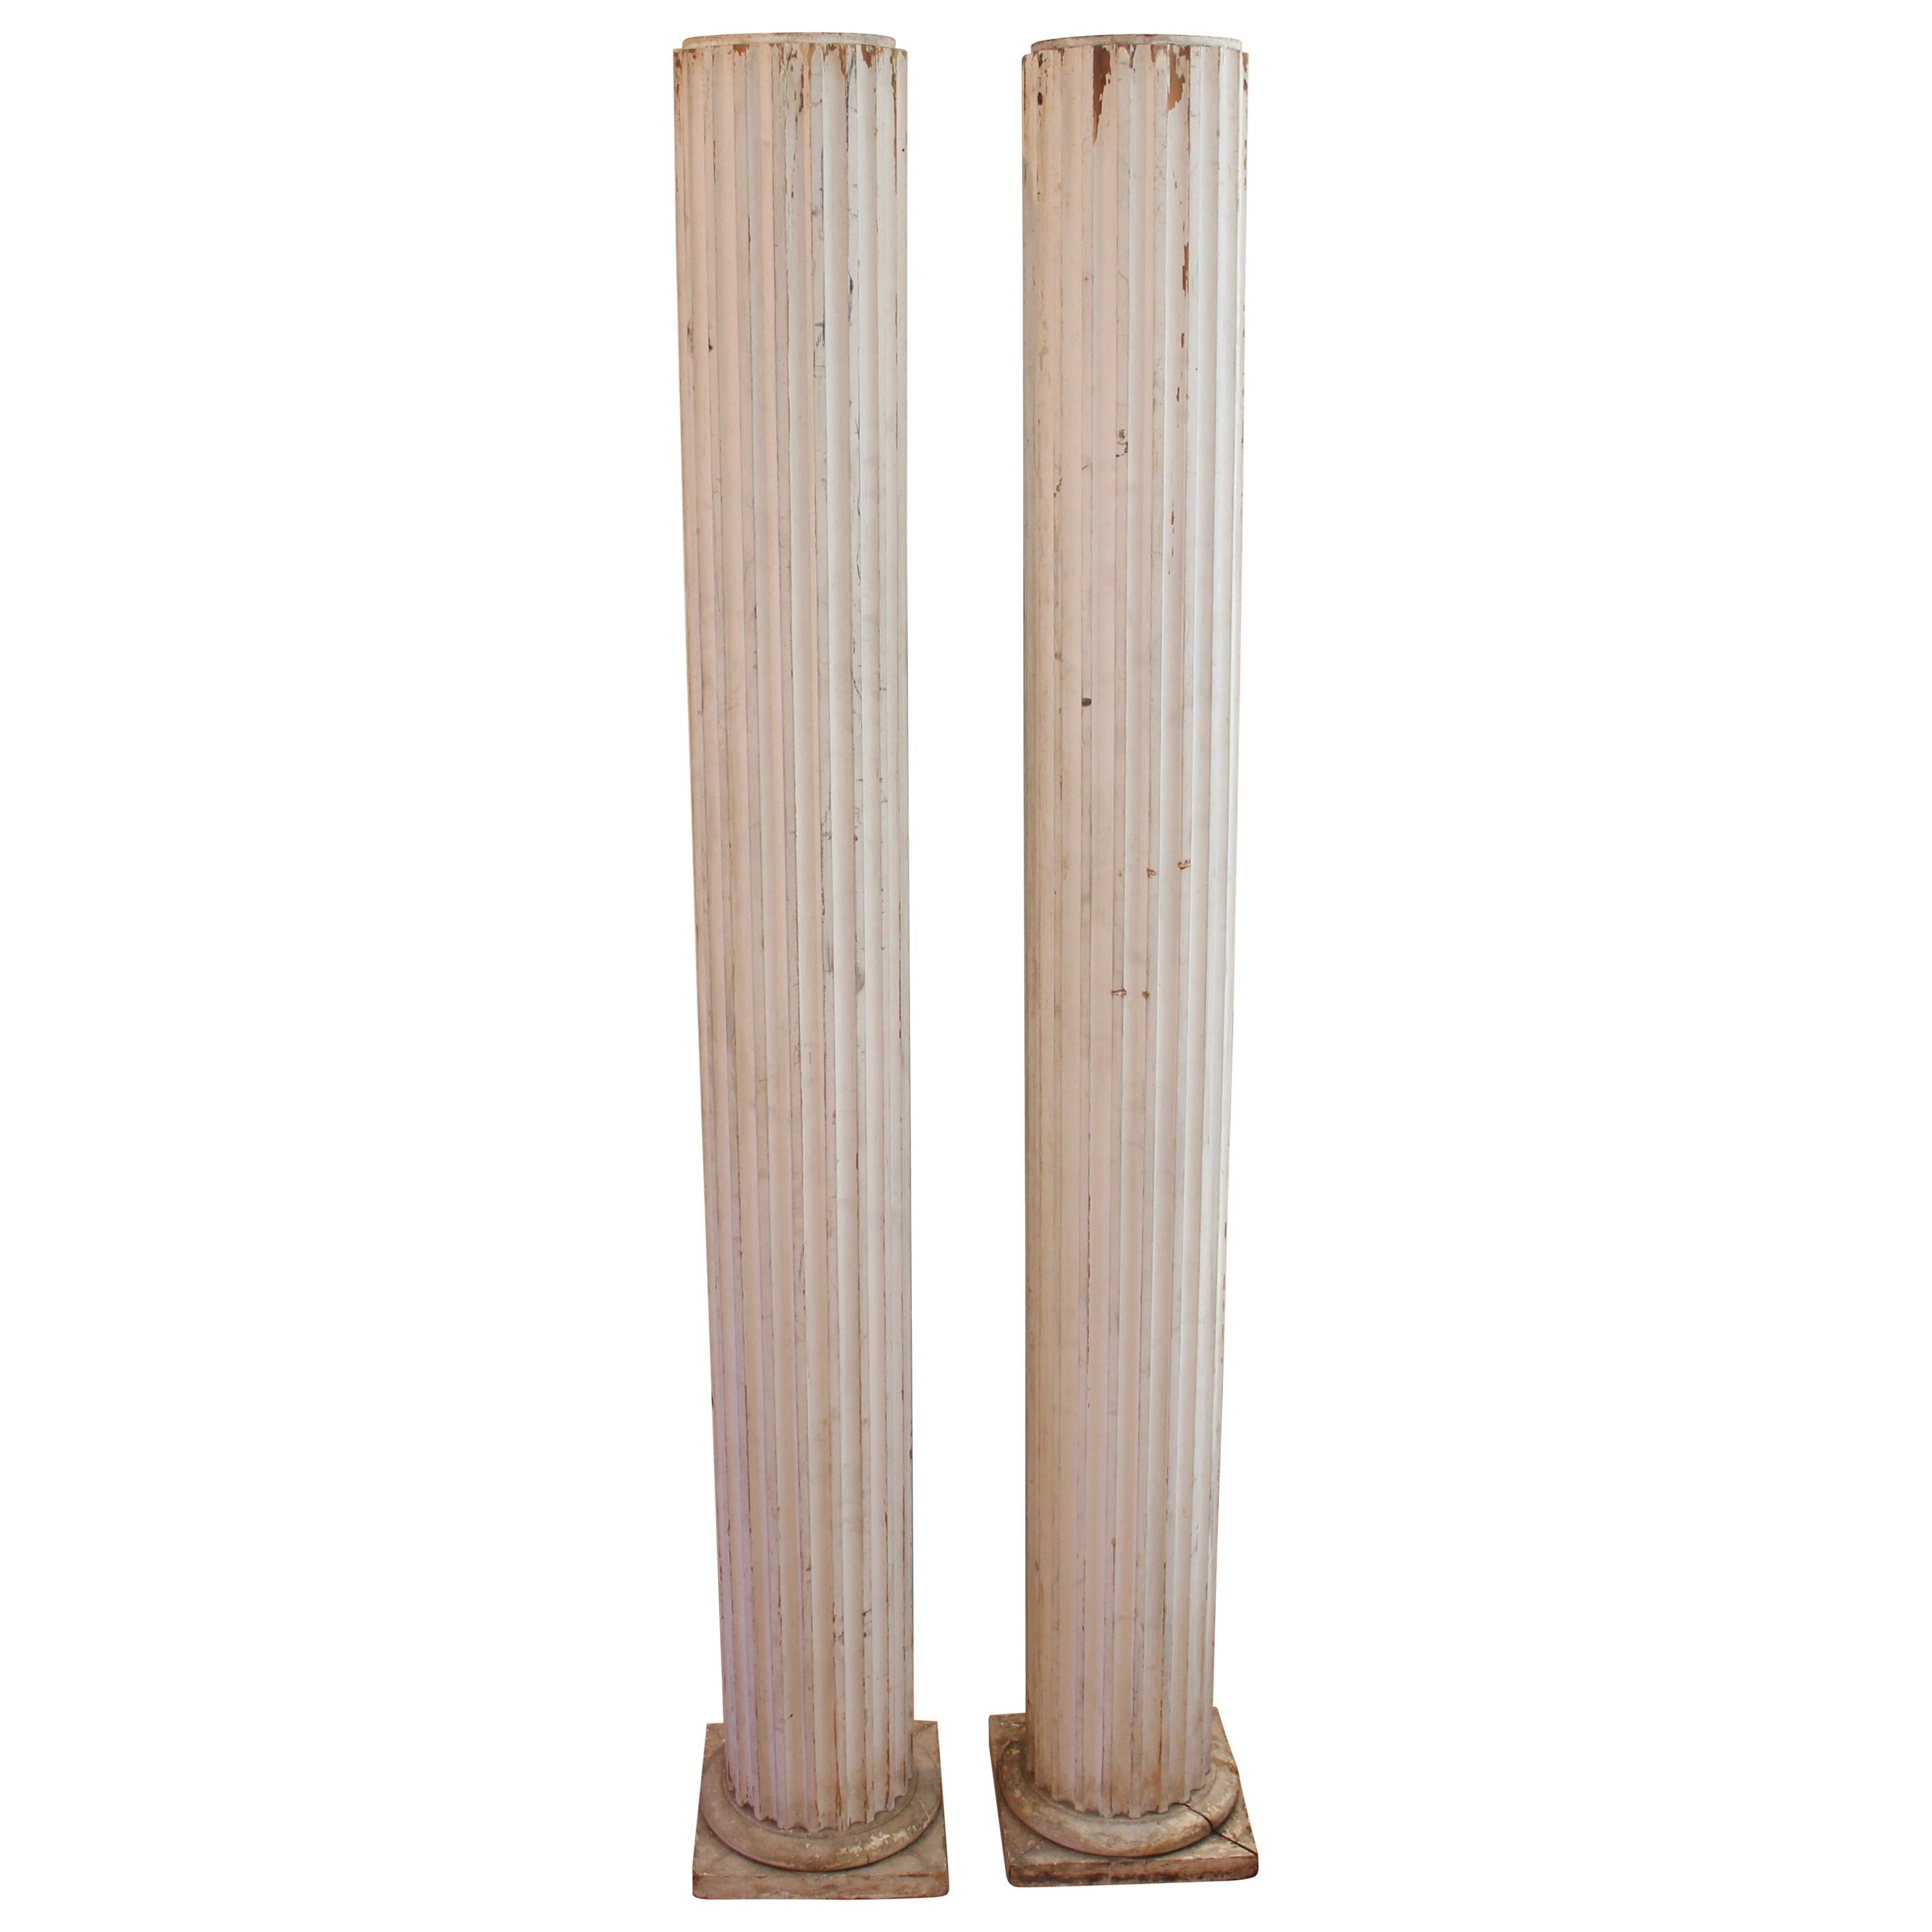 Pair of Antique Painted Columns